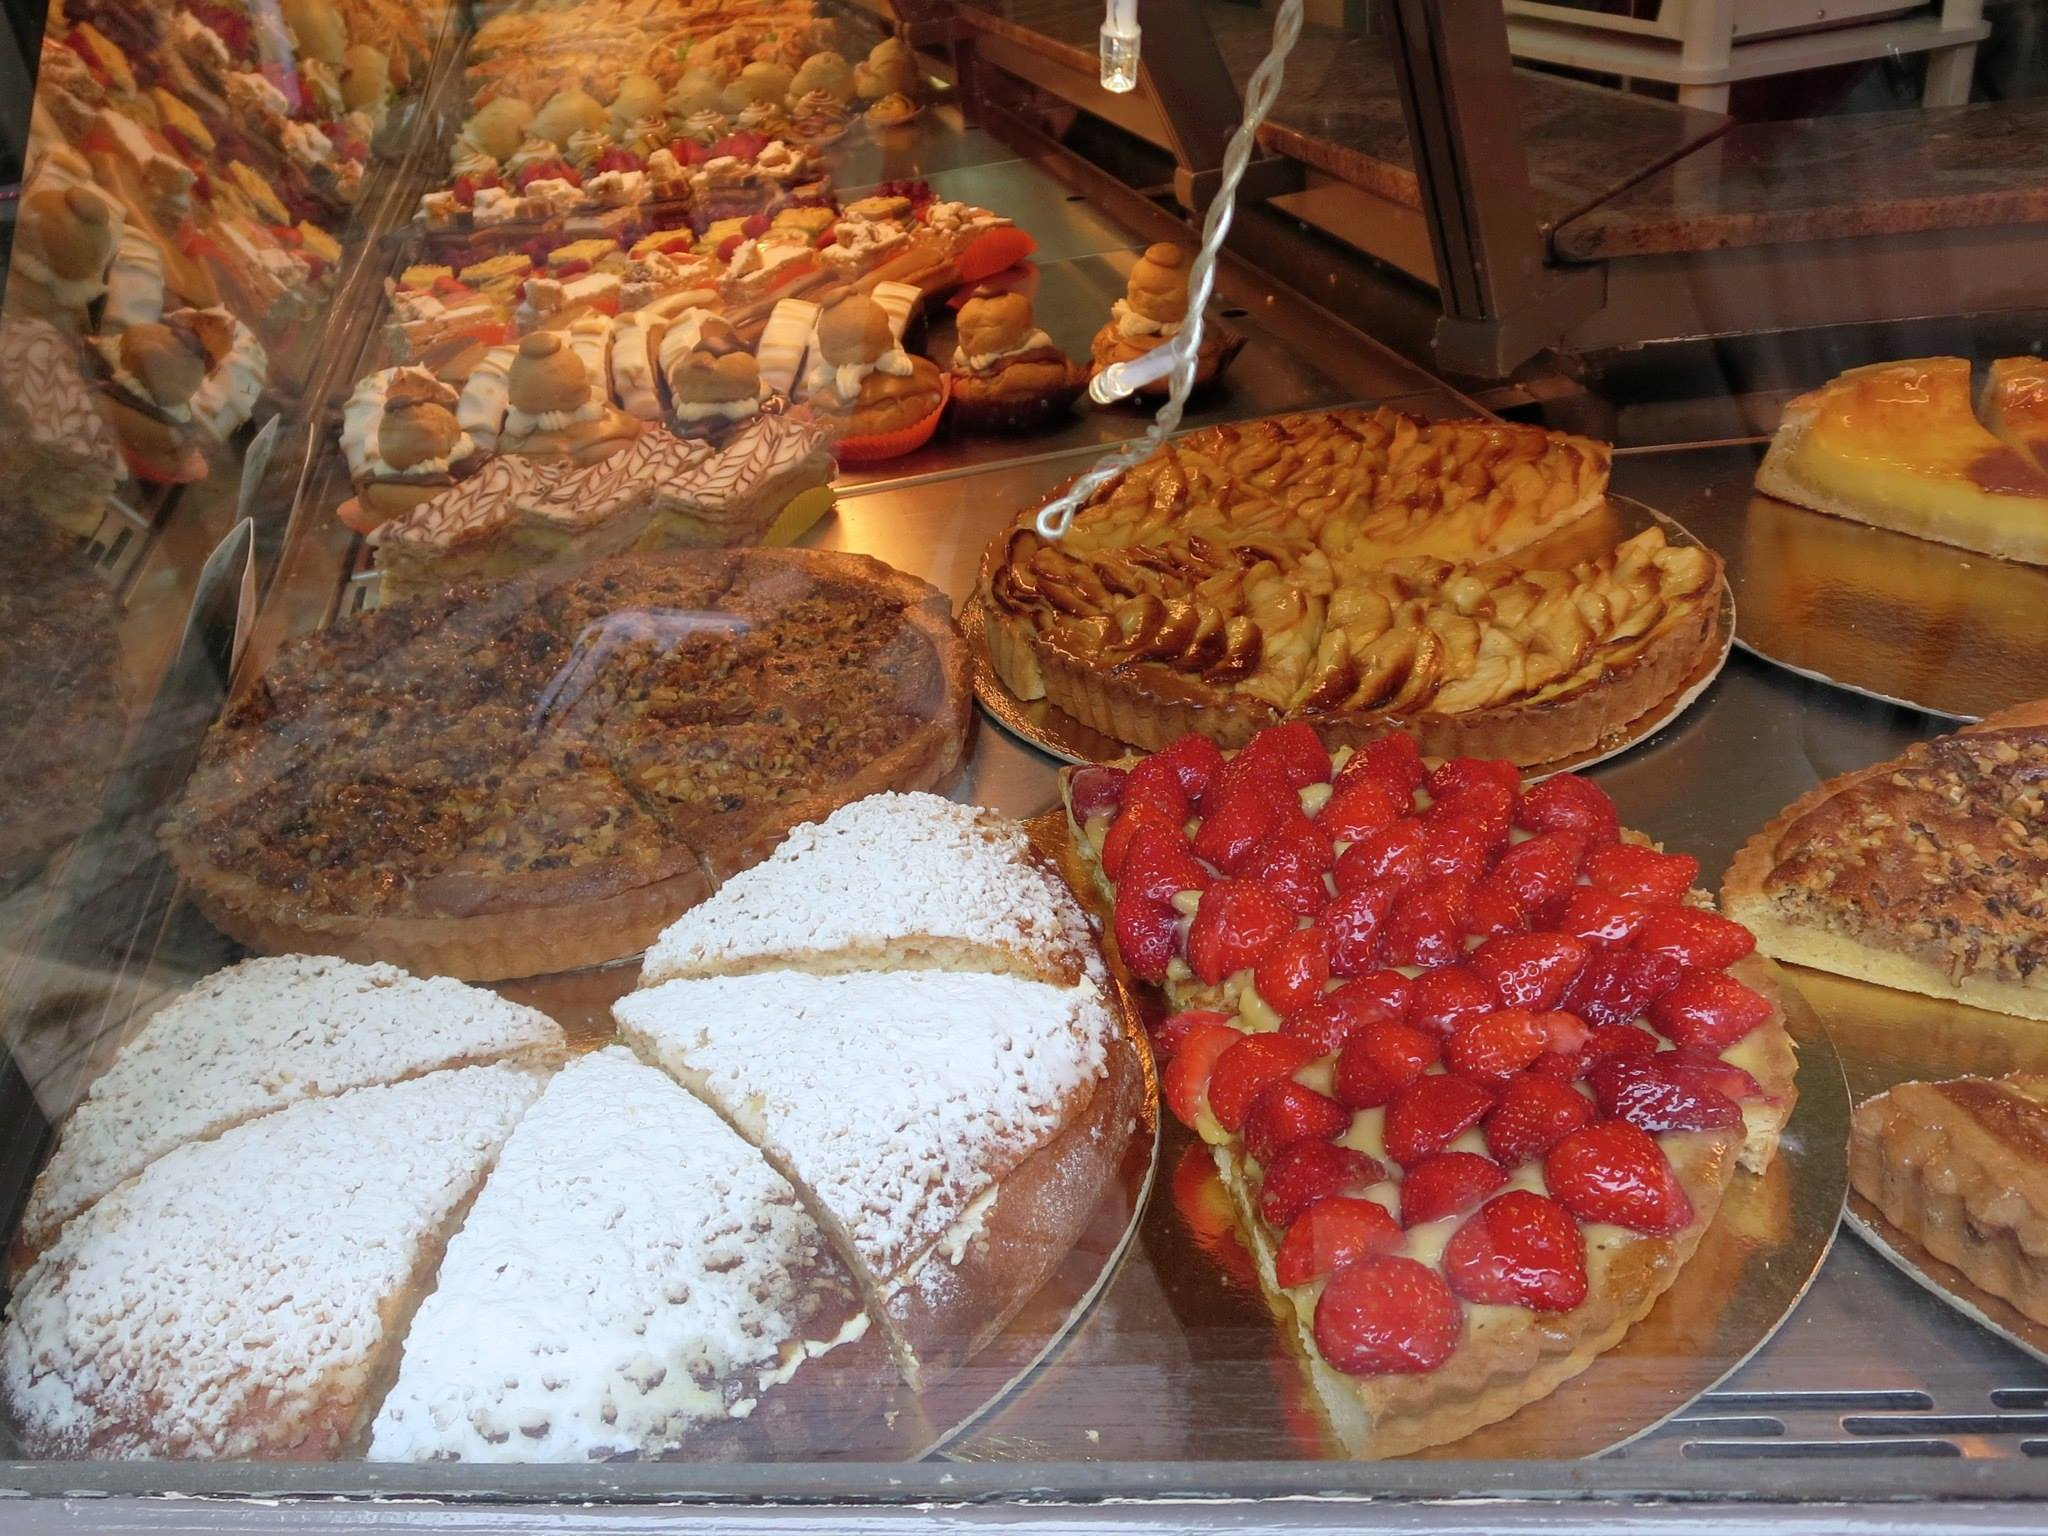 Gateaux and tarts